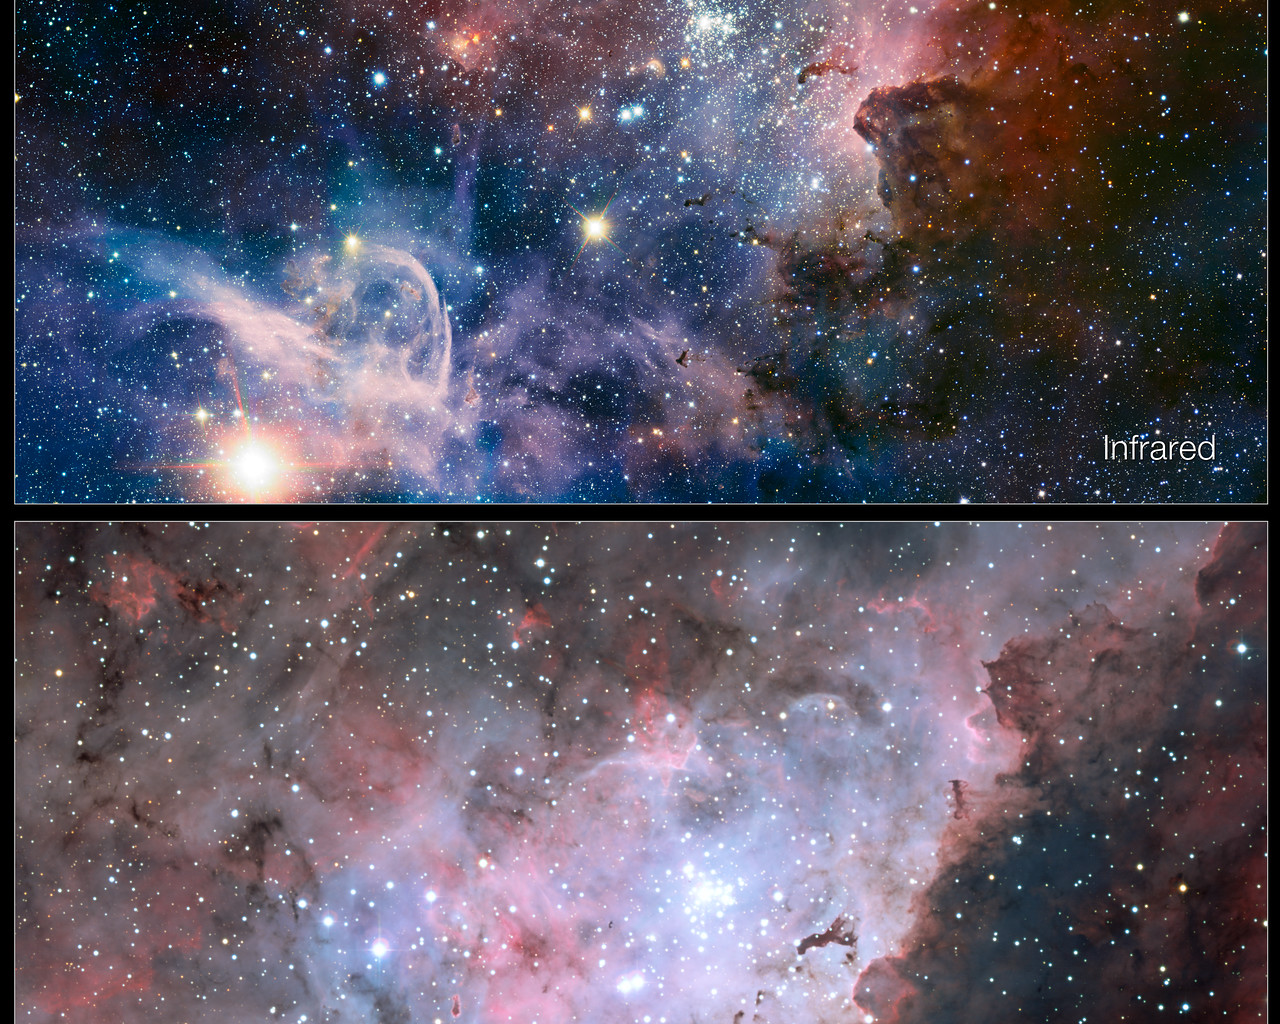 Infrared Visible Light Comparison View Of The Helix Nebula: Infrared/visible-light Comparison Of The Carina Nebula